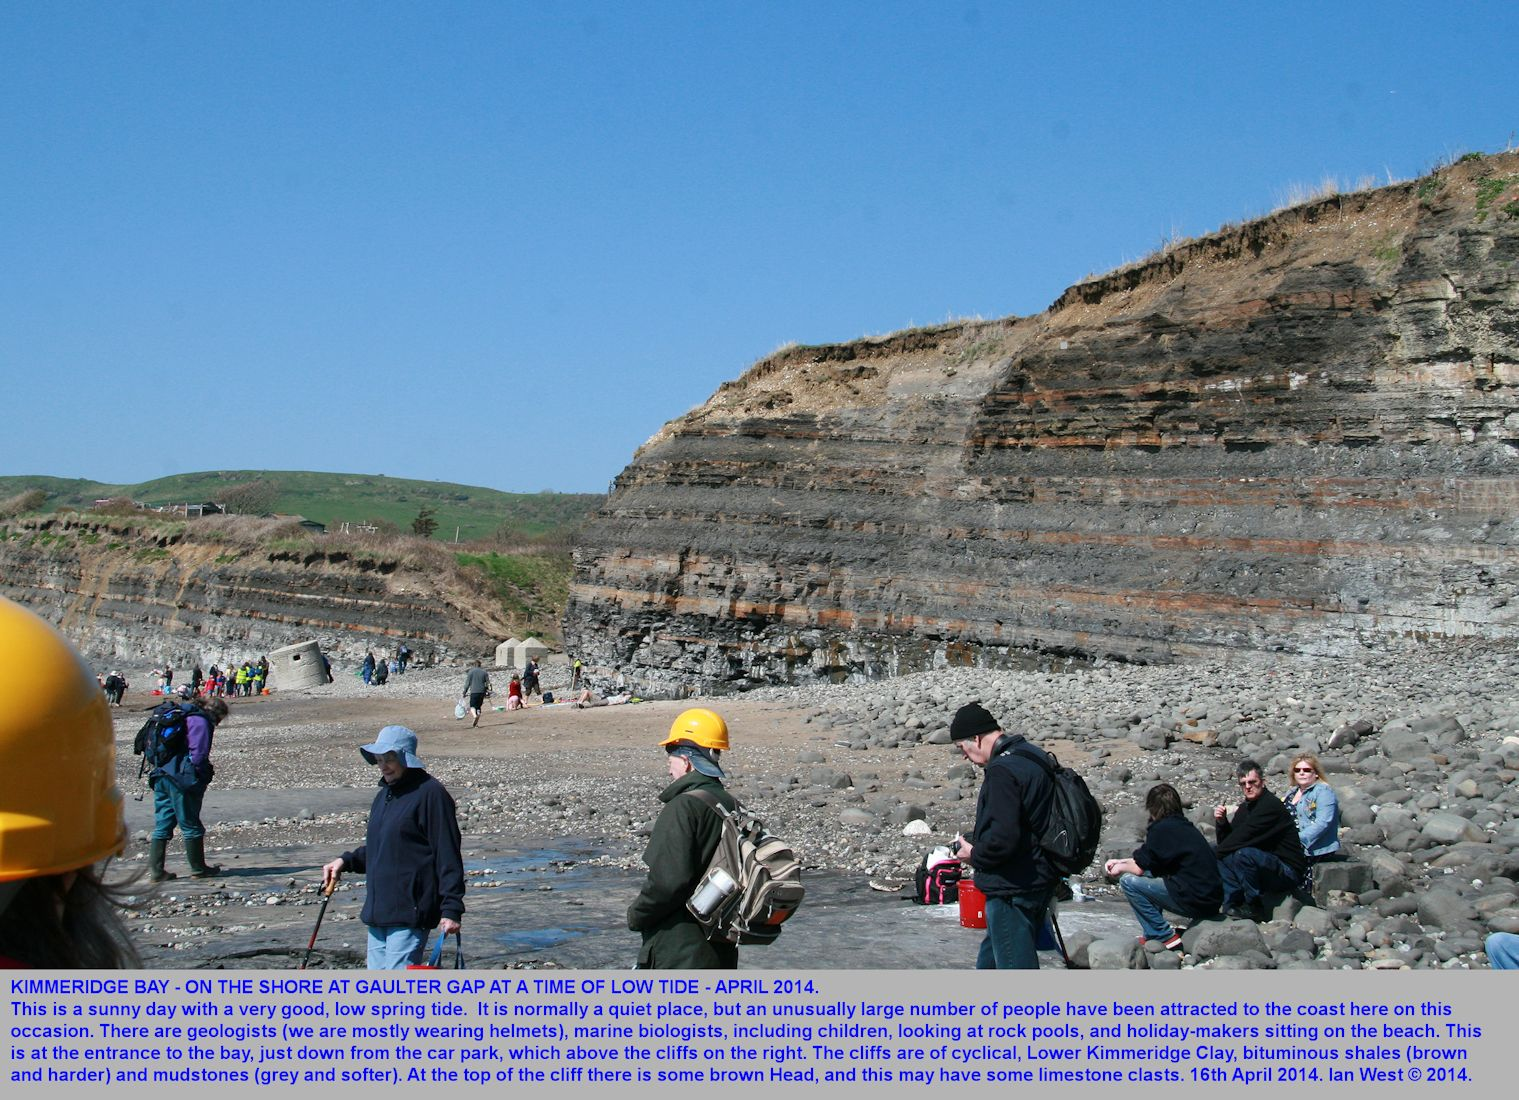 Geologists on the beach at Gaulter Gap, Kimmeridge Bay and in front of cyclical bituminous shale cliffs, 16th April 2014